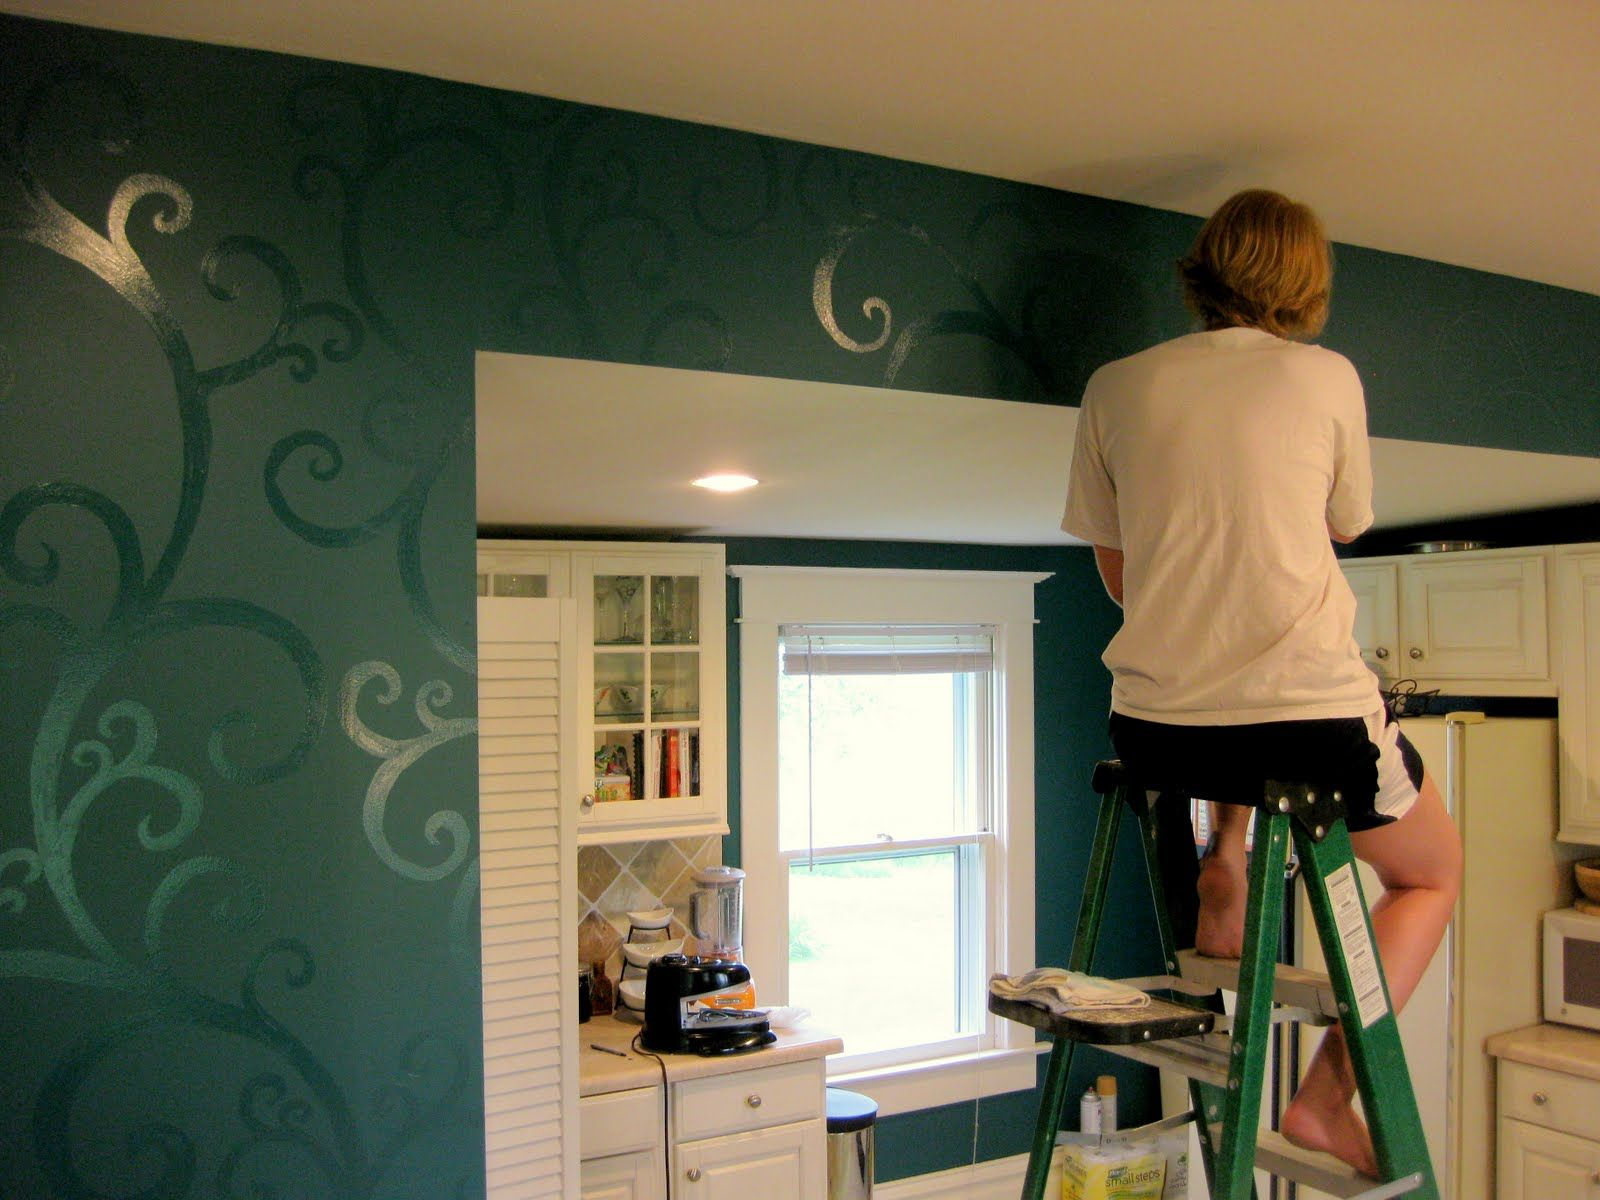 Painting walls different colors in the same room - Paint A Pattern On Flat Paint With The Same Color In High Gloss Paint A Pattern On Flat Paint With The Same Color In High Gloss